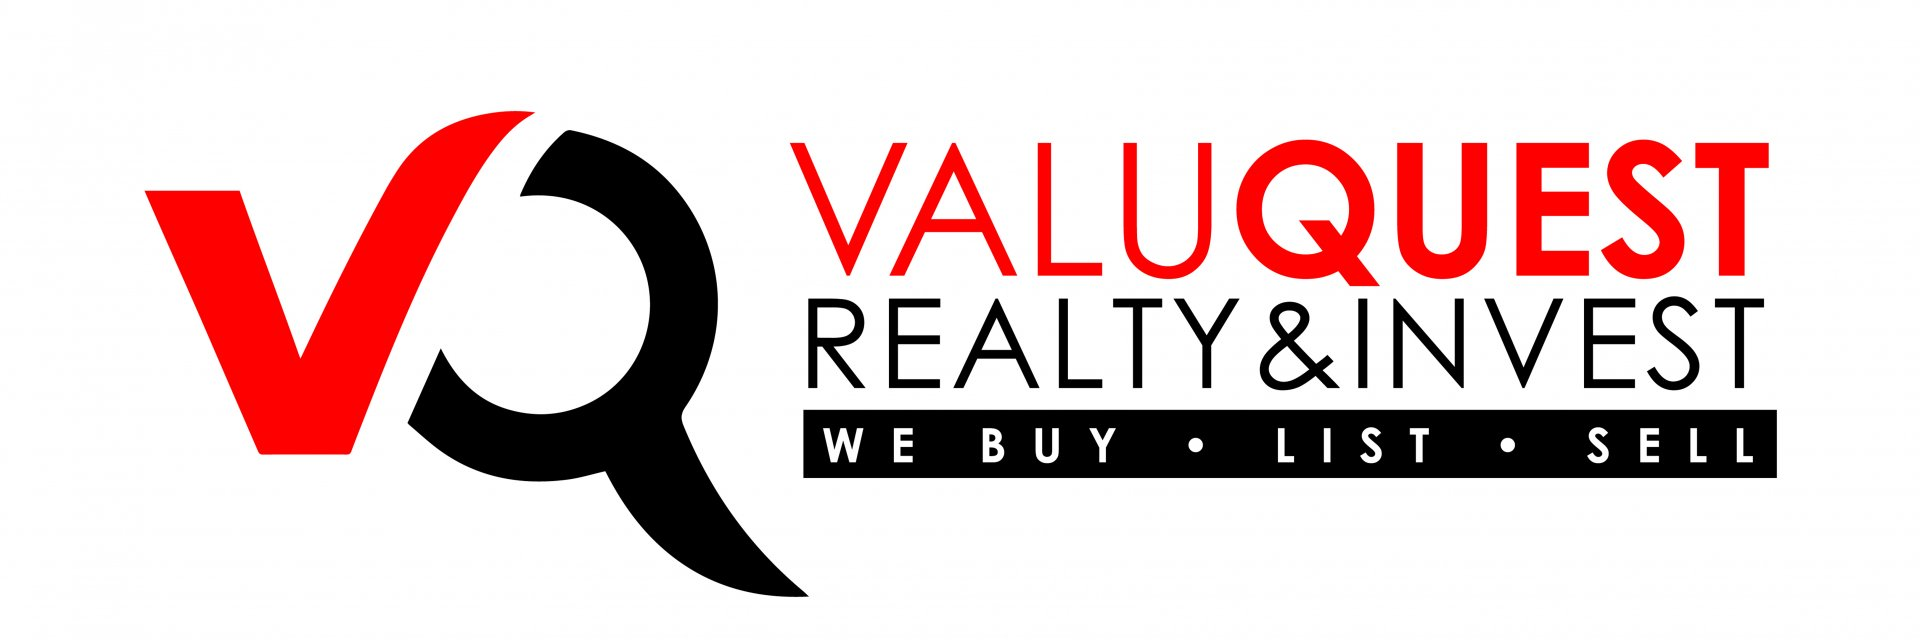 ValuQuest Realty & Invest logo